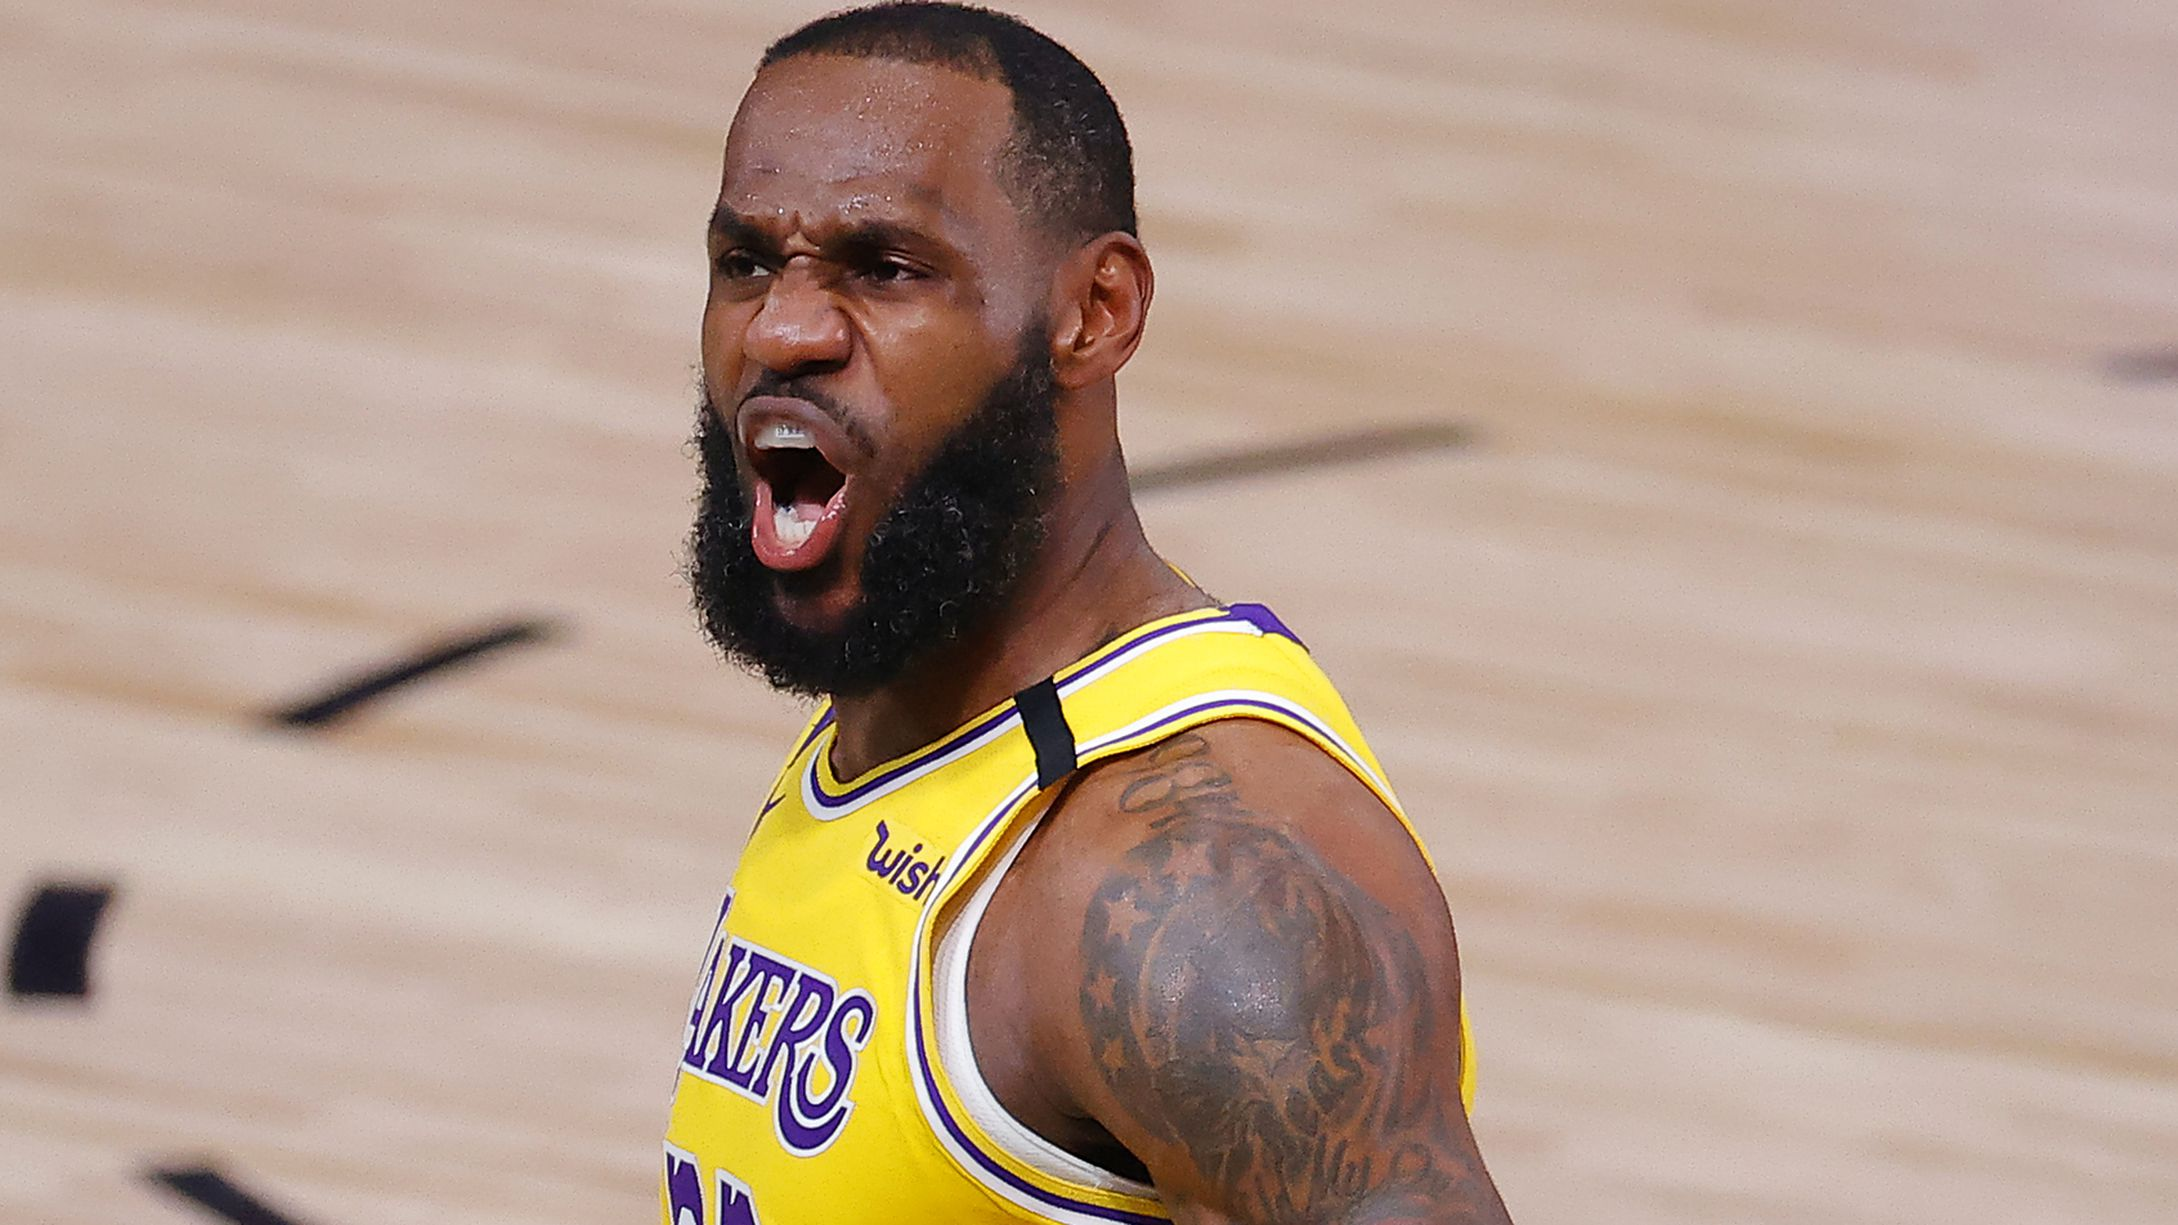 LA Lakers square series against Portland as NBA coaches engage in Twitter spat